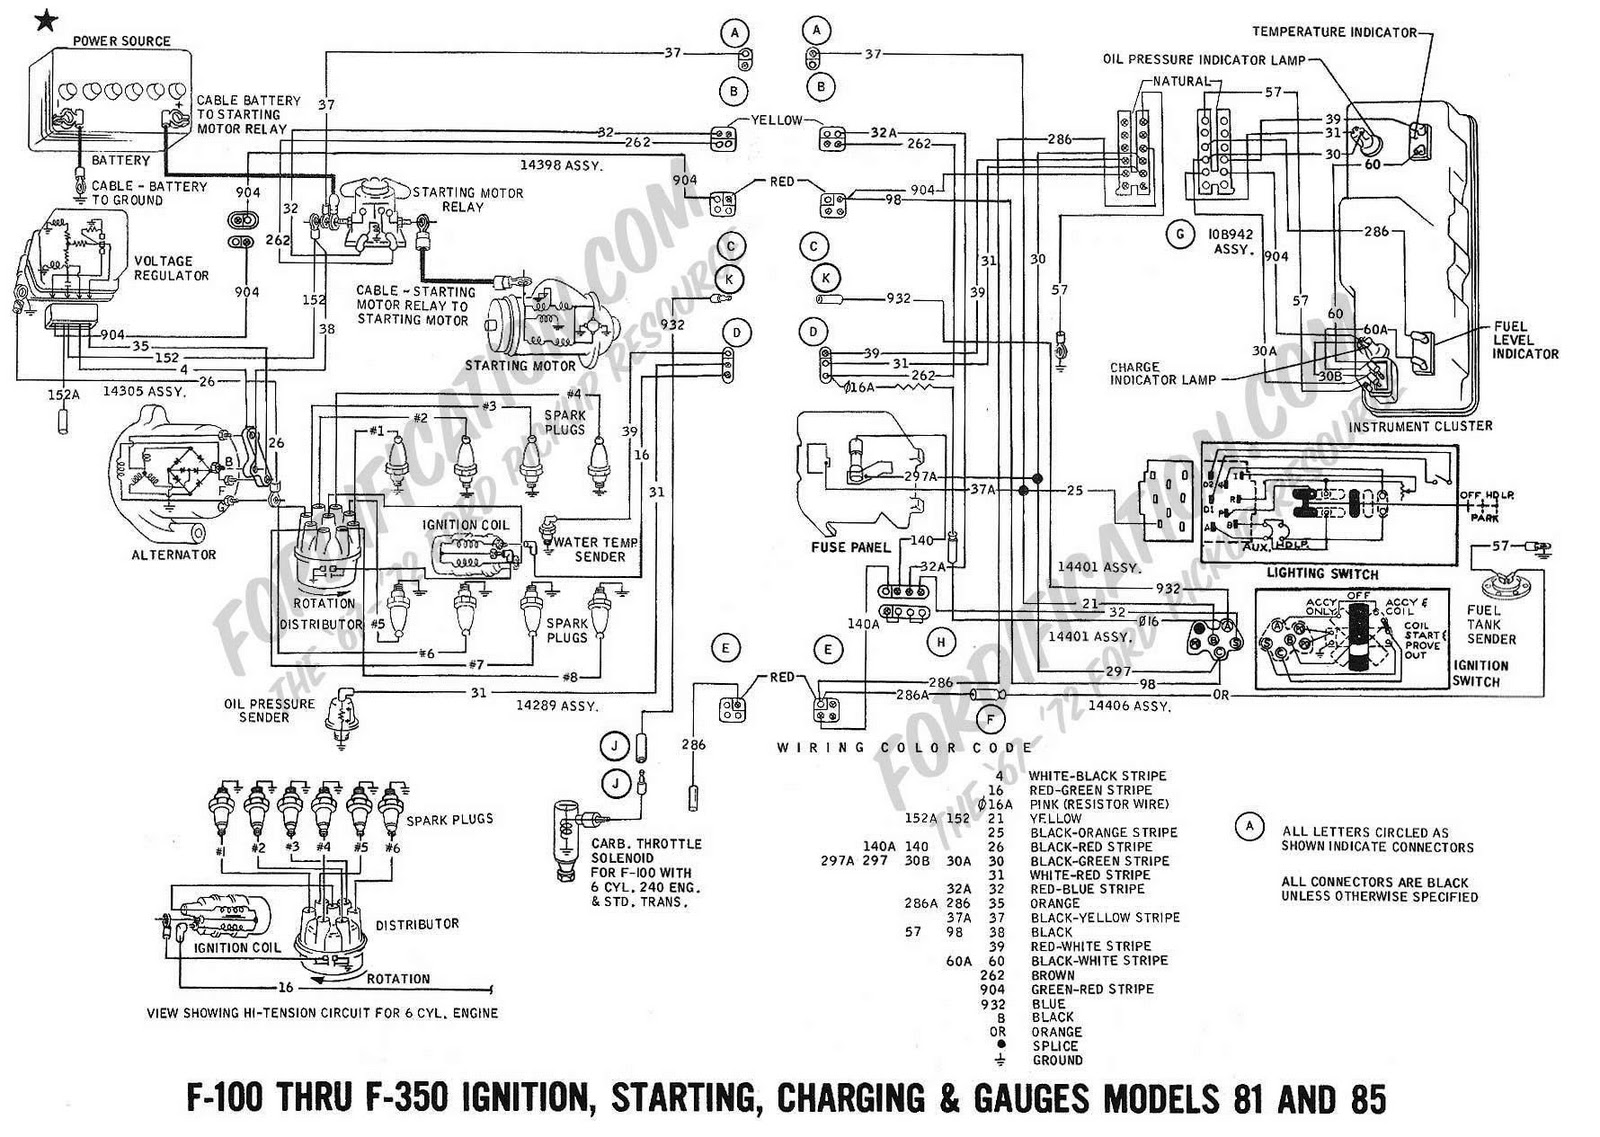 66 ford f100 wiring harness wiring diagram database 1955 Ford Thunderbird Wiring Diagram 66 ford f100 wiring harness data wiring diagram kia sportage wiring harness 66 f100 wiring diagram